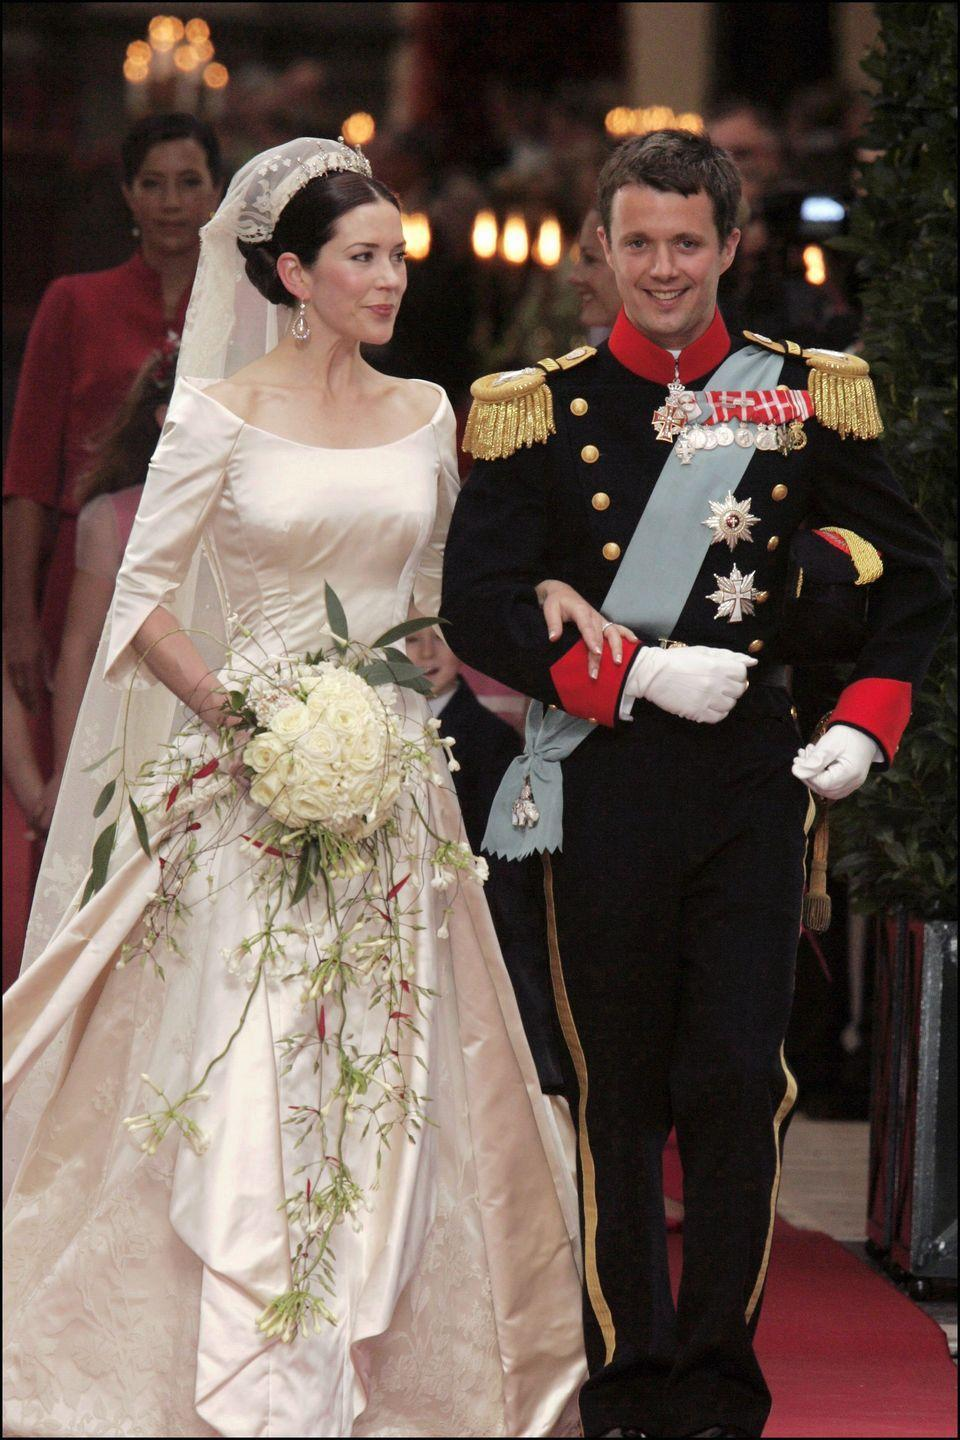 "<p>Mary Donaldson of Denmark married Crown Prince Frederik on May 14, 2004 at the <span class=""redactor-unlink"">Church of Our Lady in Copenhagen, Denmark</span>. Donaldson's wedding dress, created by Danish designer Uffe Frank, was made of an ivory duchess satin with a scoop neckline, a slim-fit bodice and lily-like sleeves. </p>"